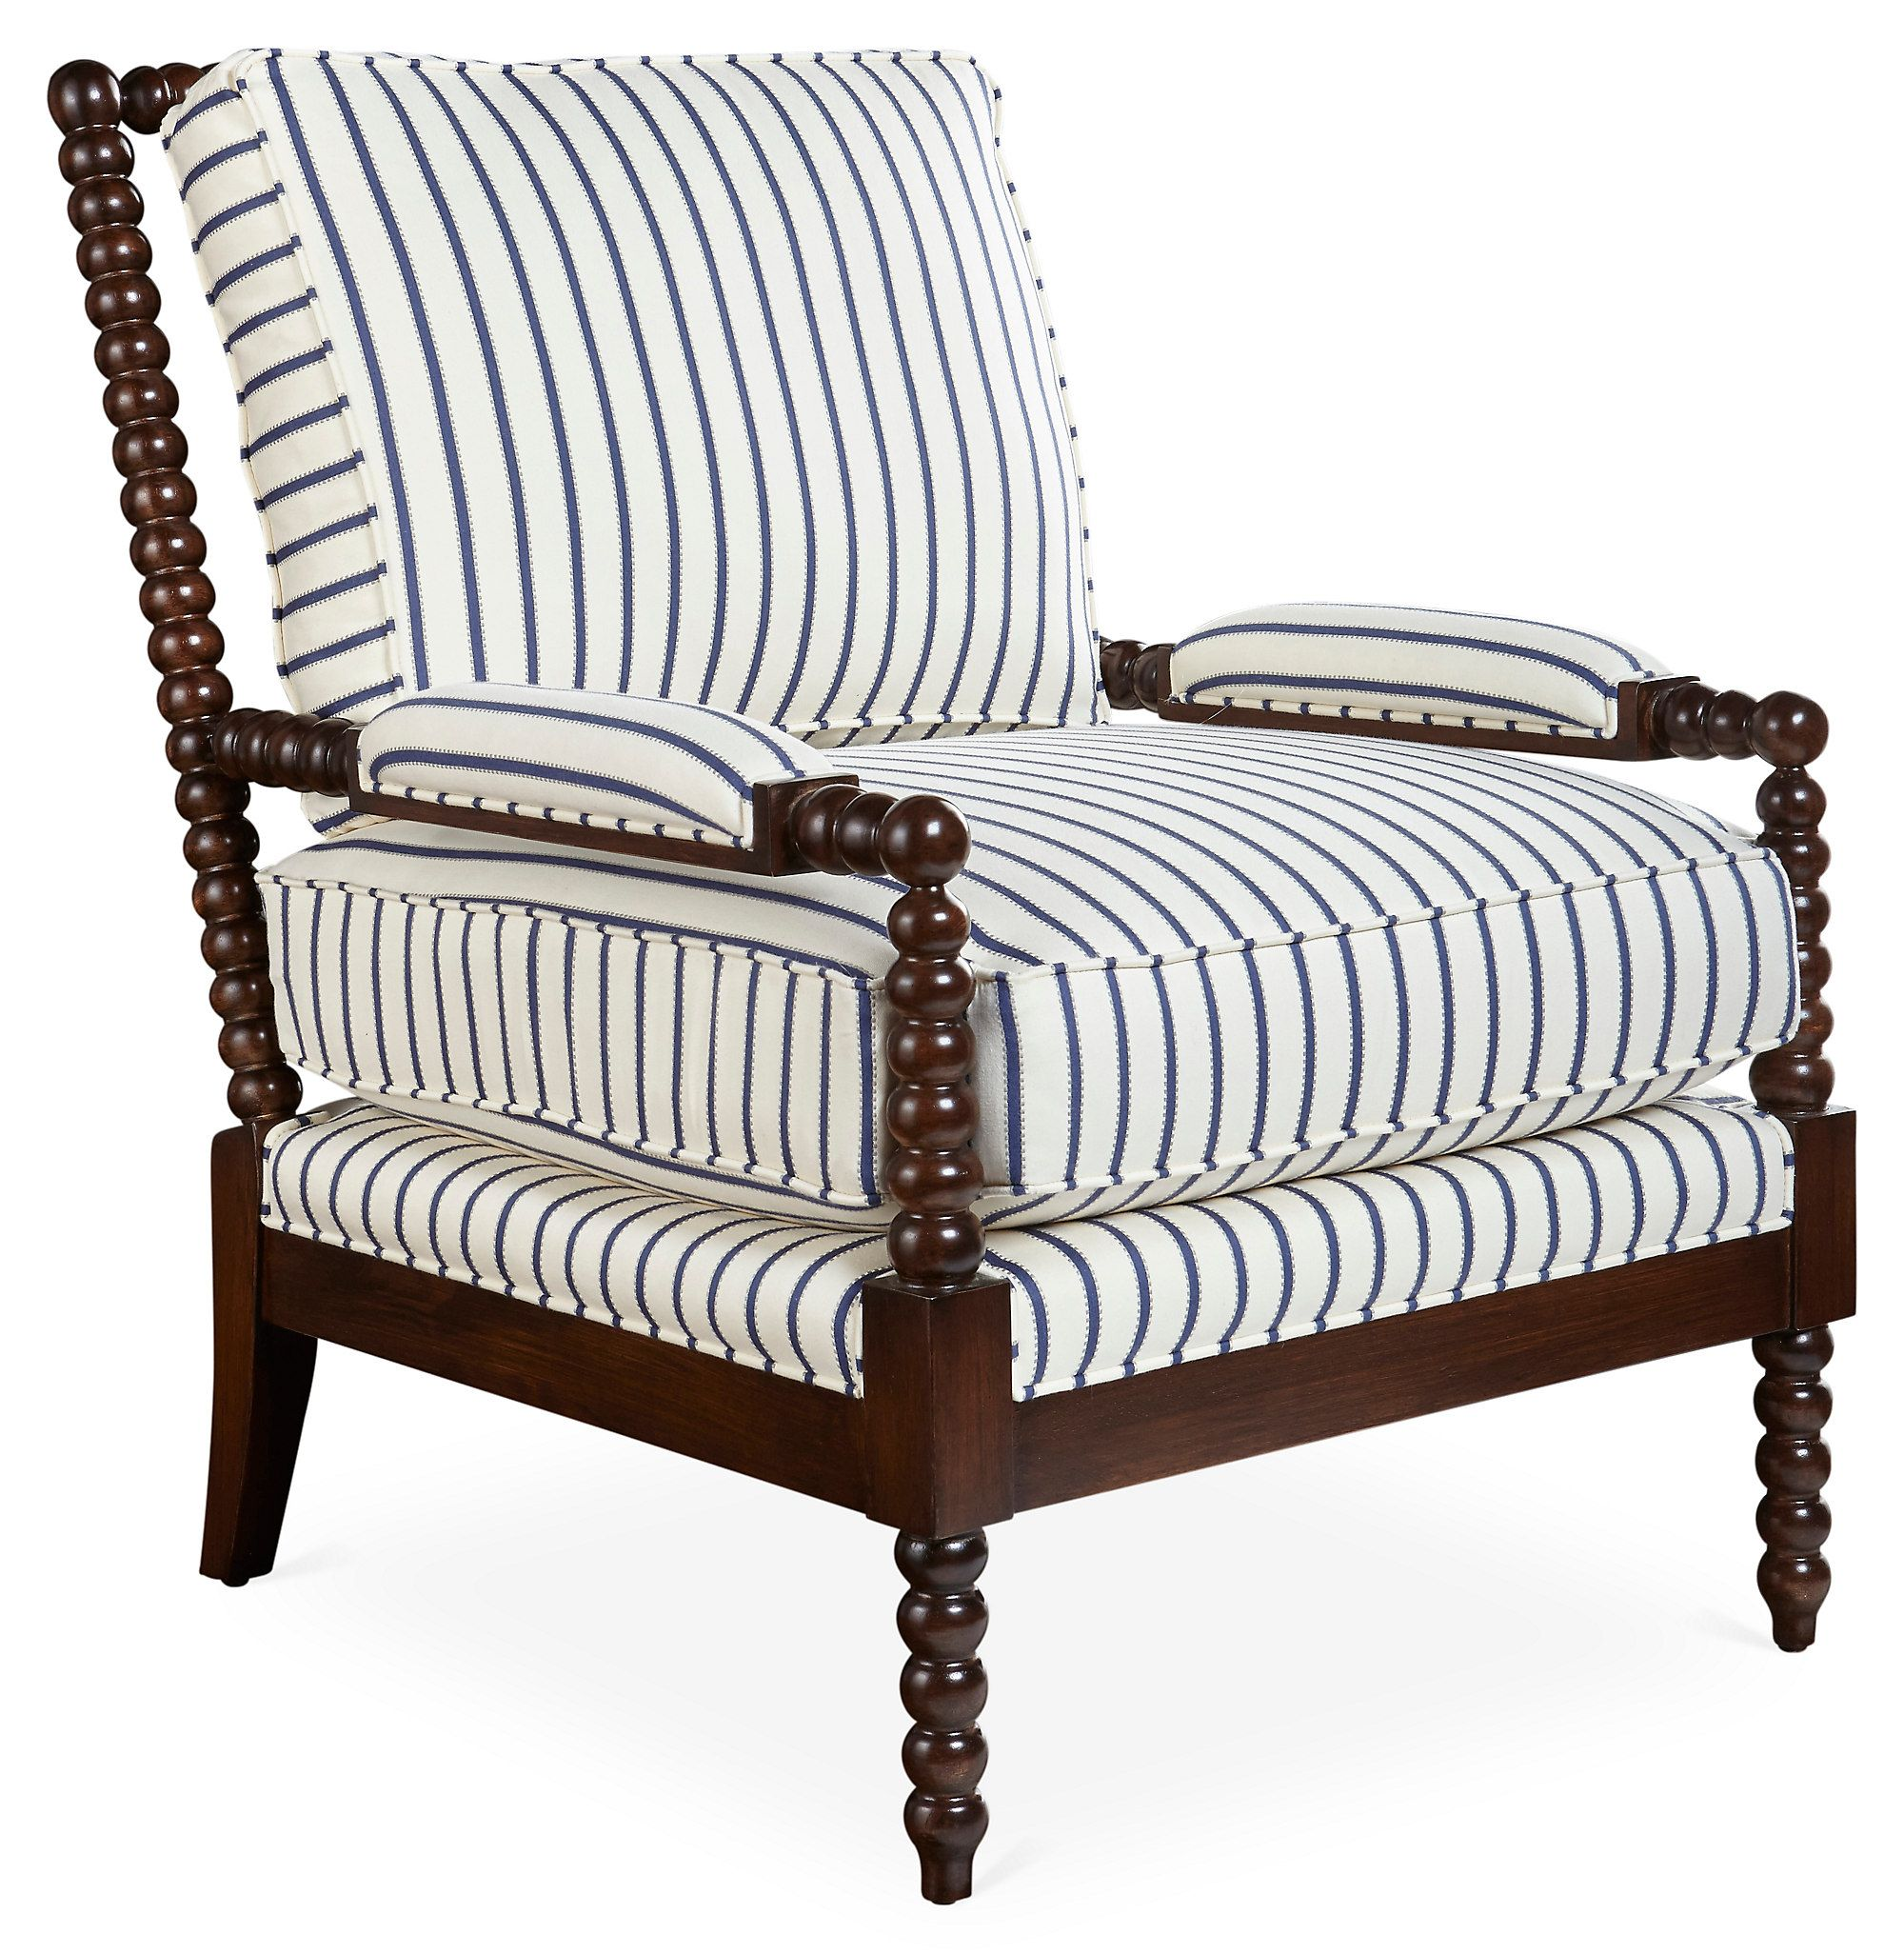 Blue And White Striped Chair Bankwood Spindle Chair Navy Stripe One Kings Lane